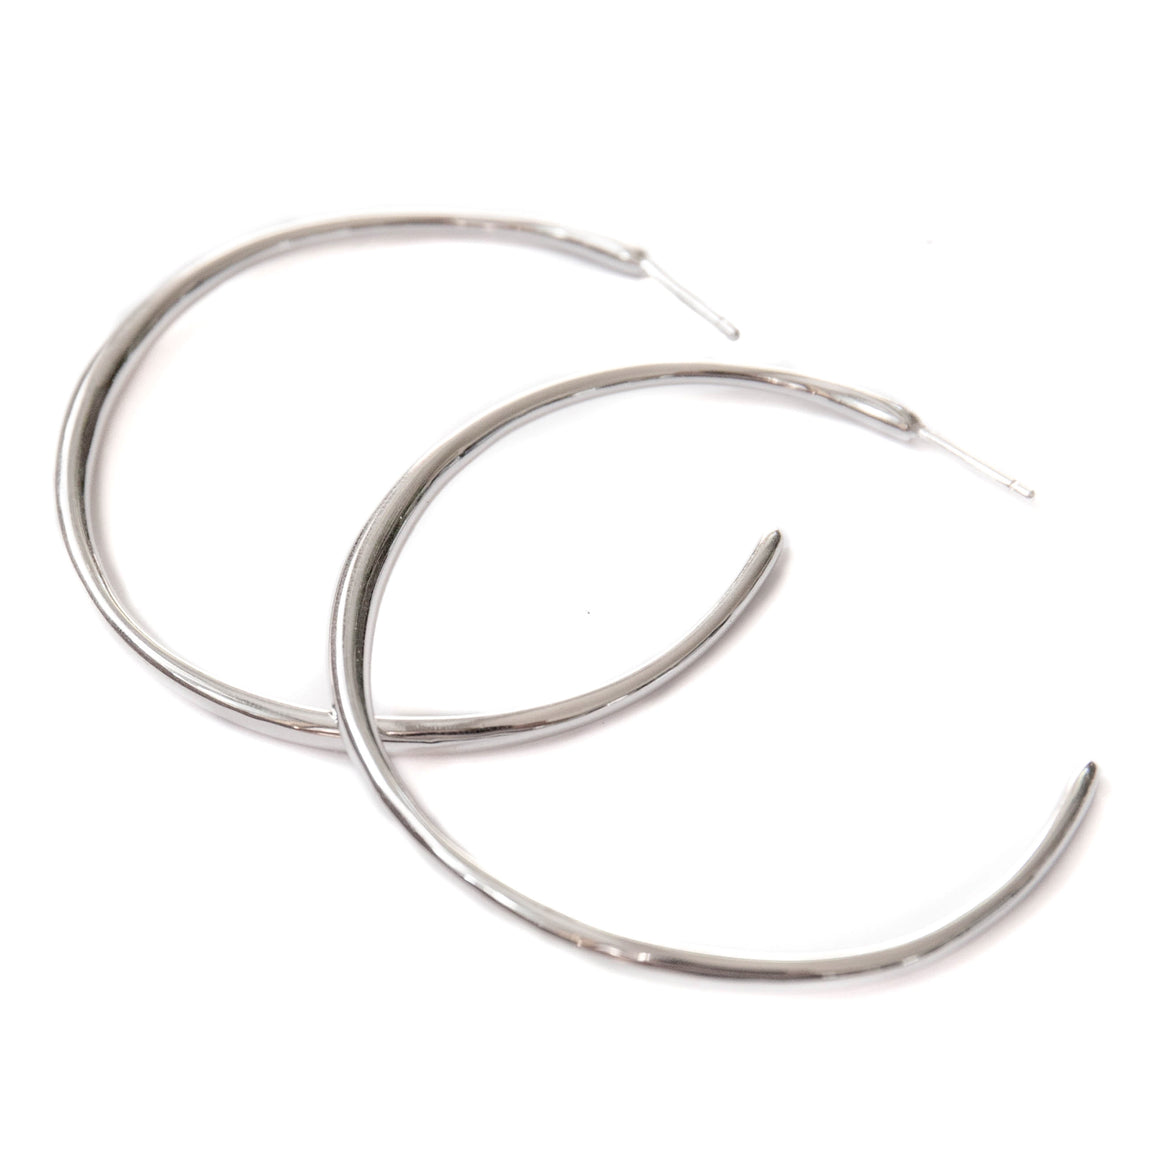 Cala Hoop Earrings  | Silver - Isobell Designs - Earrings - handmade-jewelry-california-minimal-delicate-jewellery.